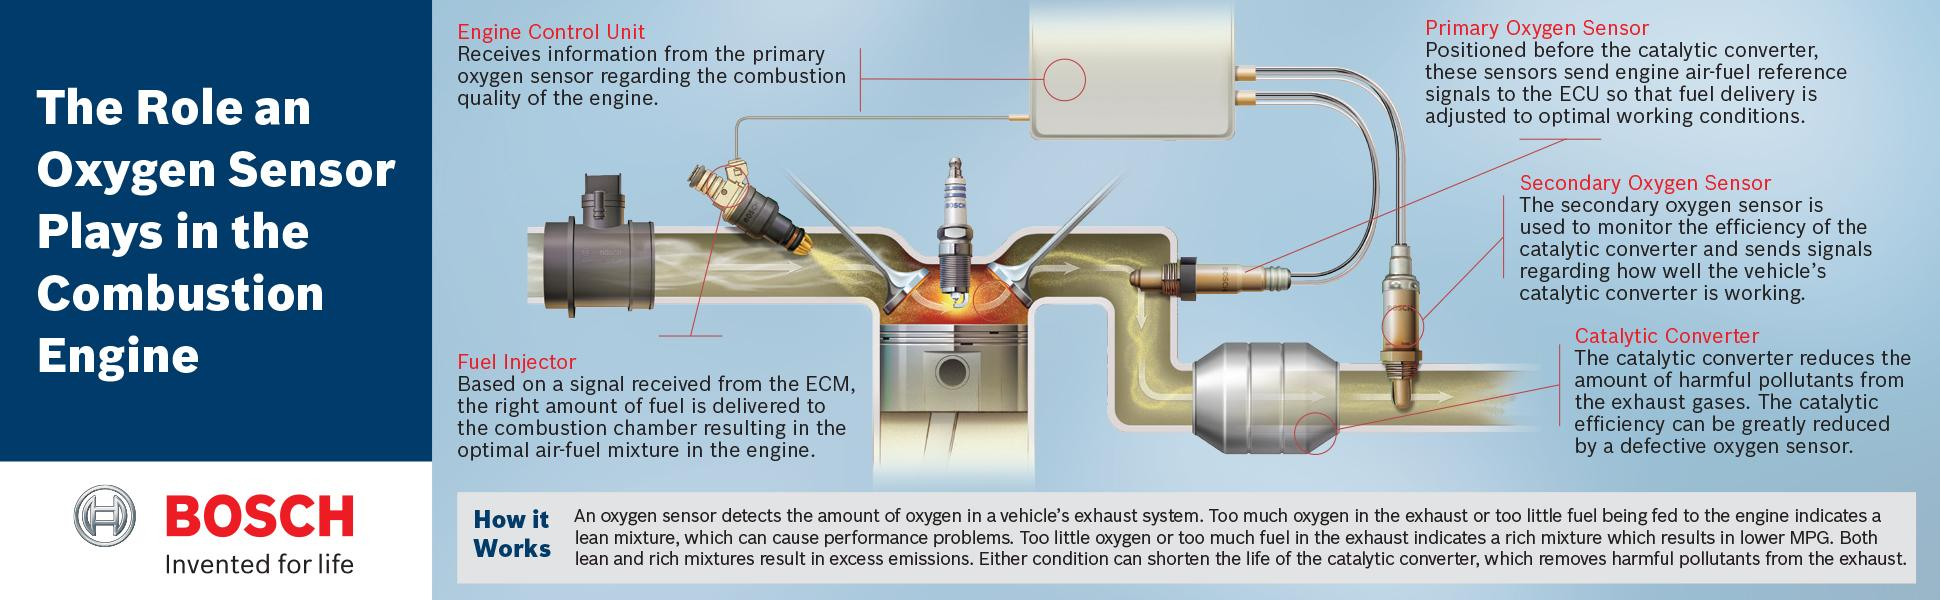 Ford Oxygen Sensor Wiring Diagram | Wiring Liry on